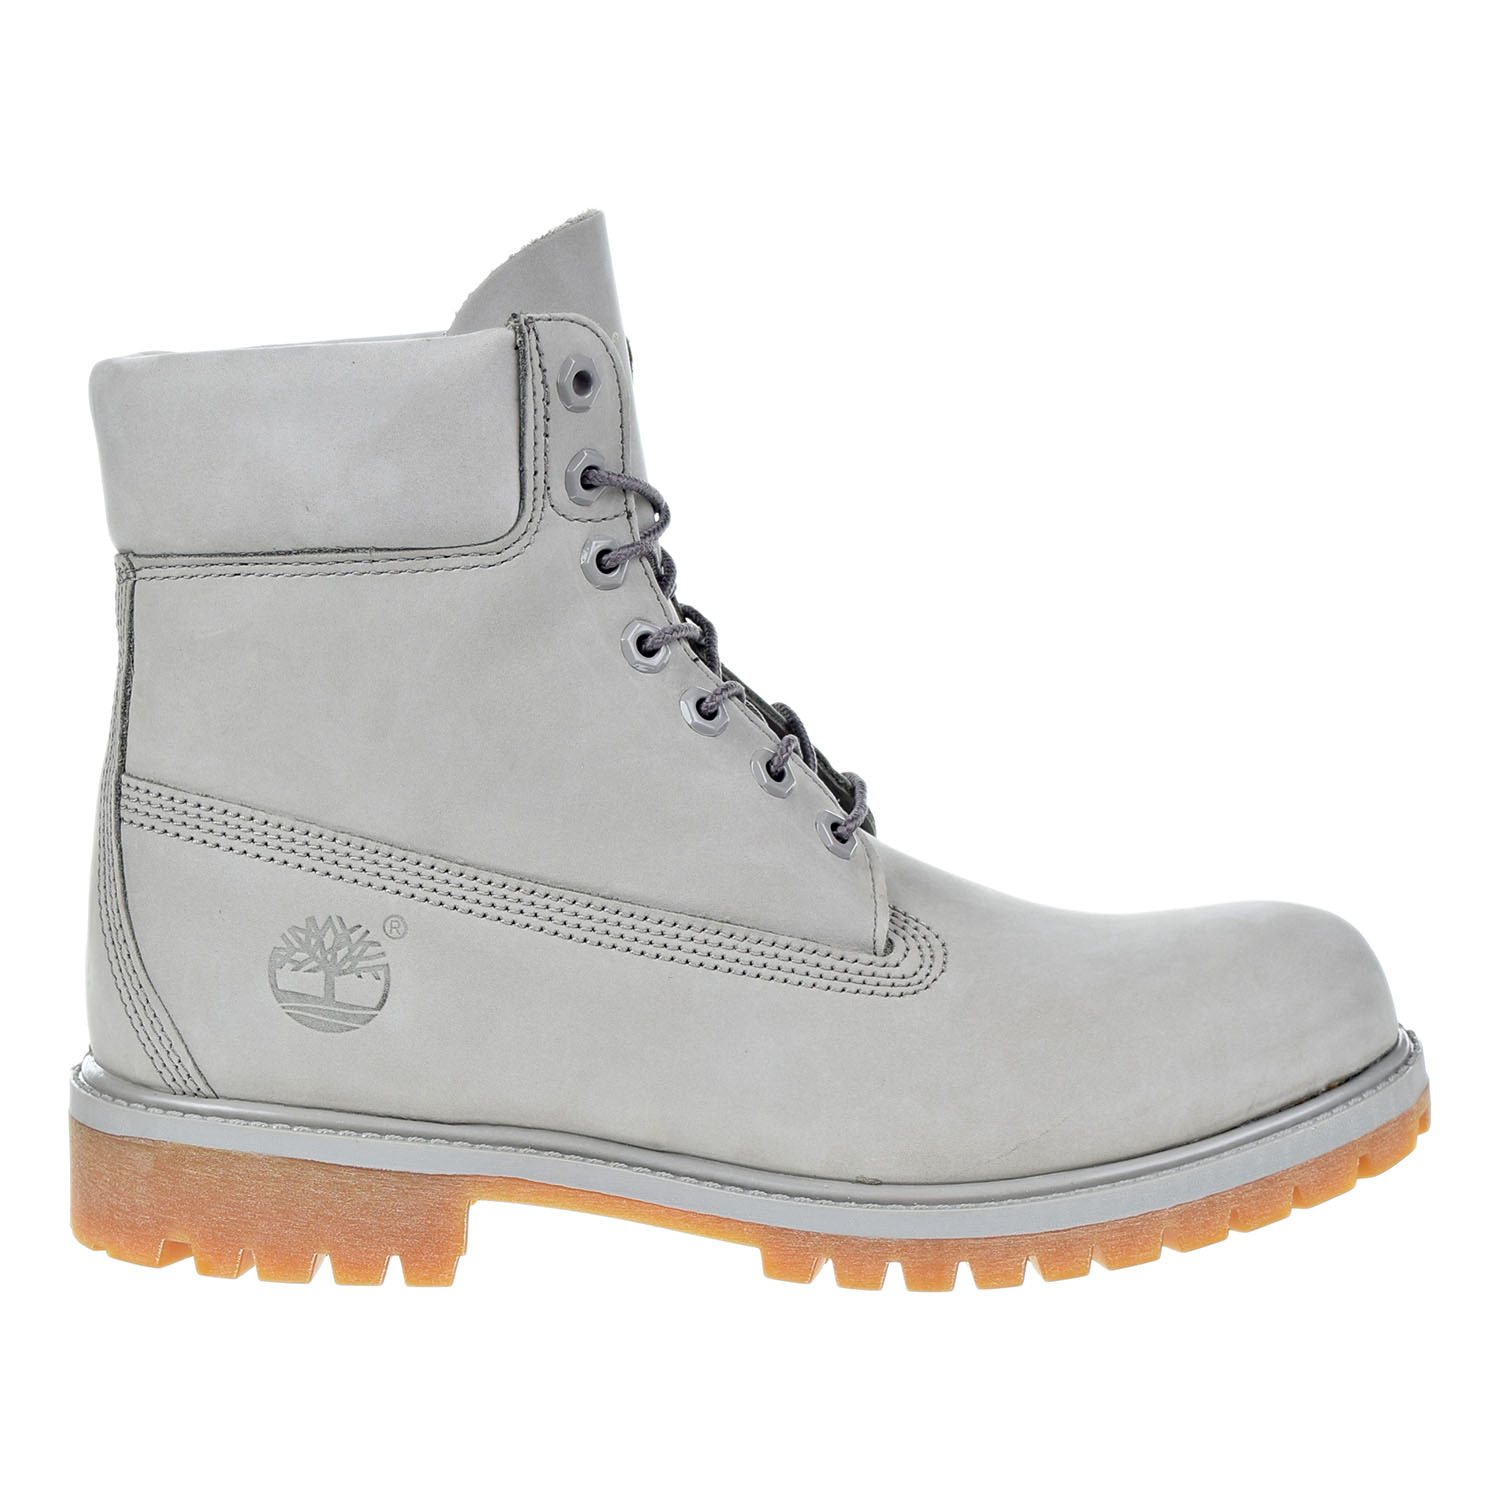 Timberland 6 Inch Premium Waterproof Mens Boots Light Grey tb0a1gau by Timberland